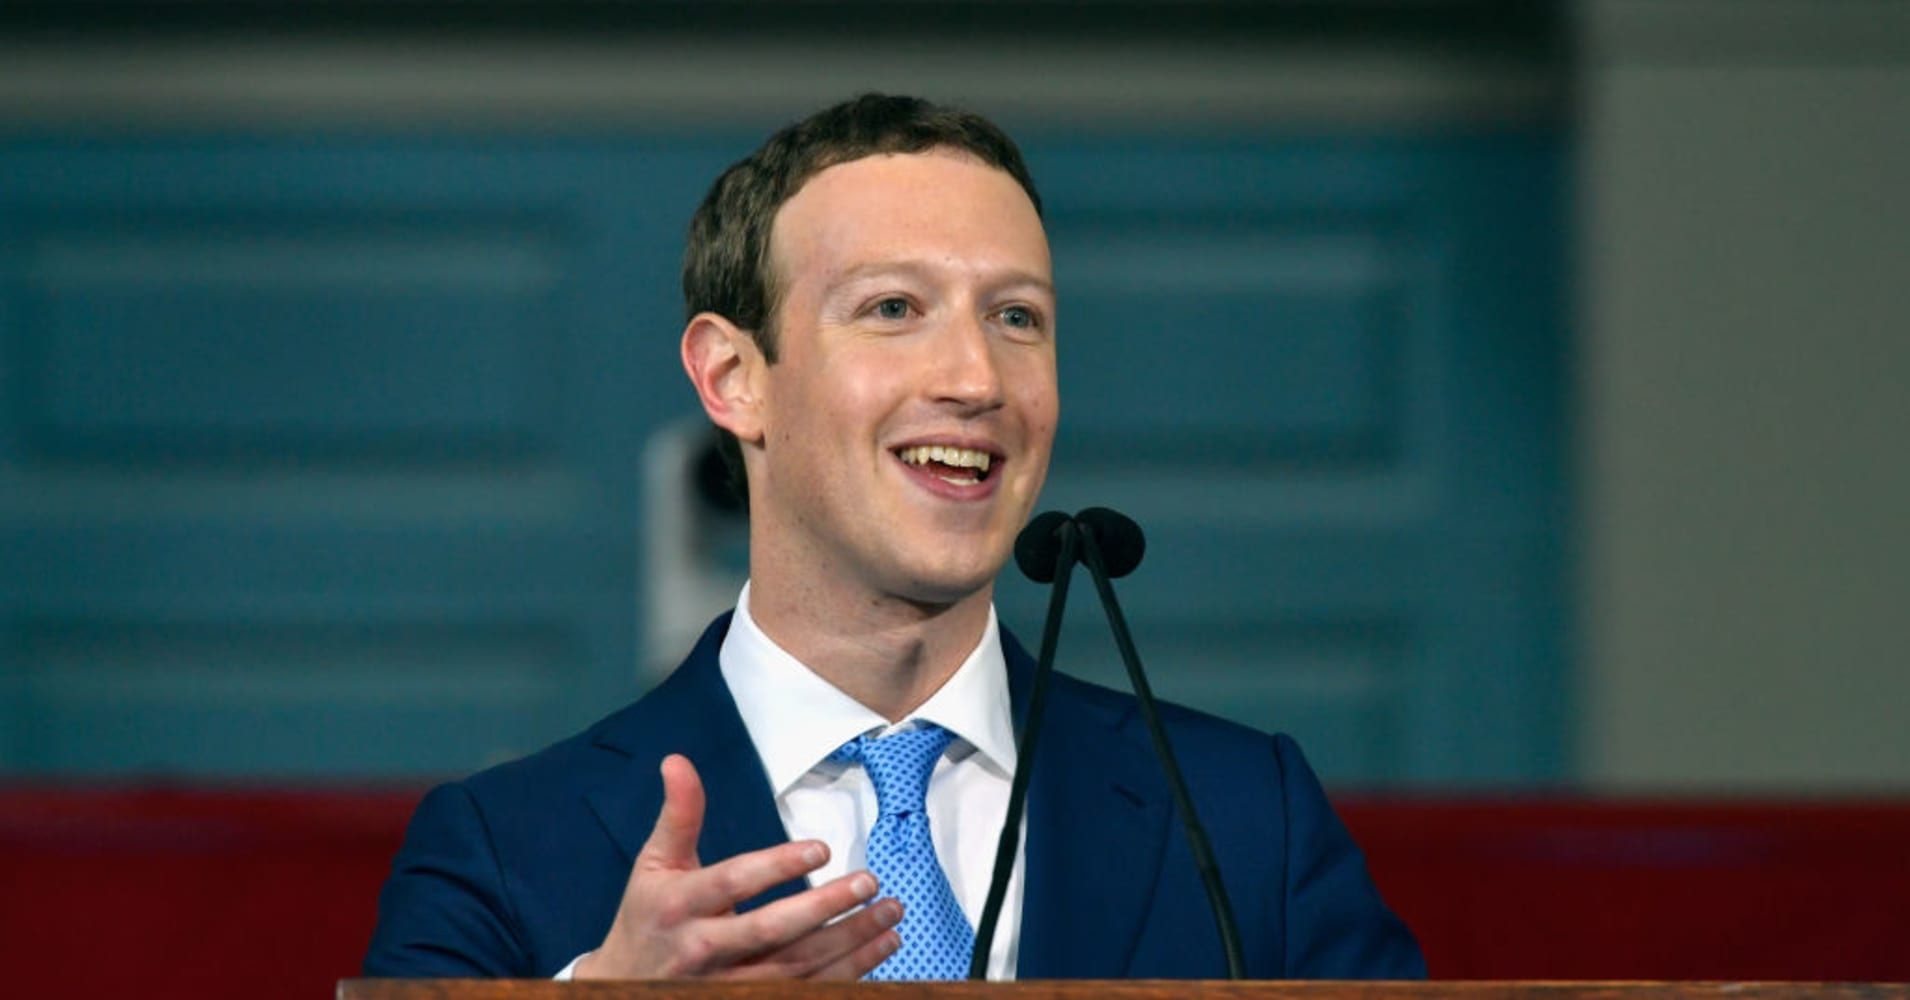 Mark Zuckerberg gets his Harvard degree post 12 years of dropping out